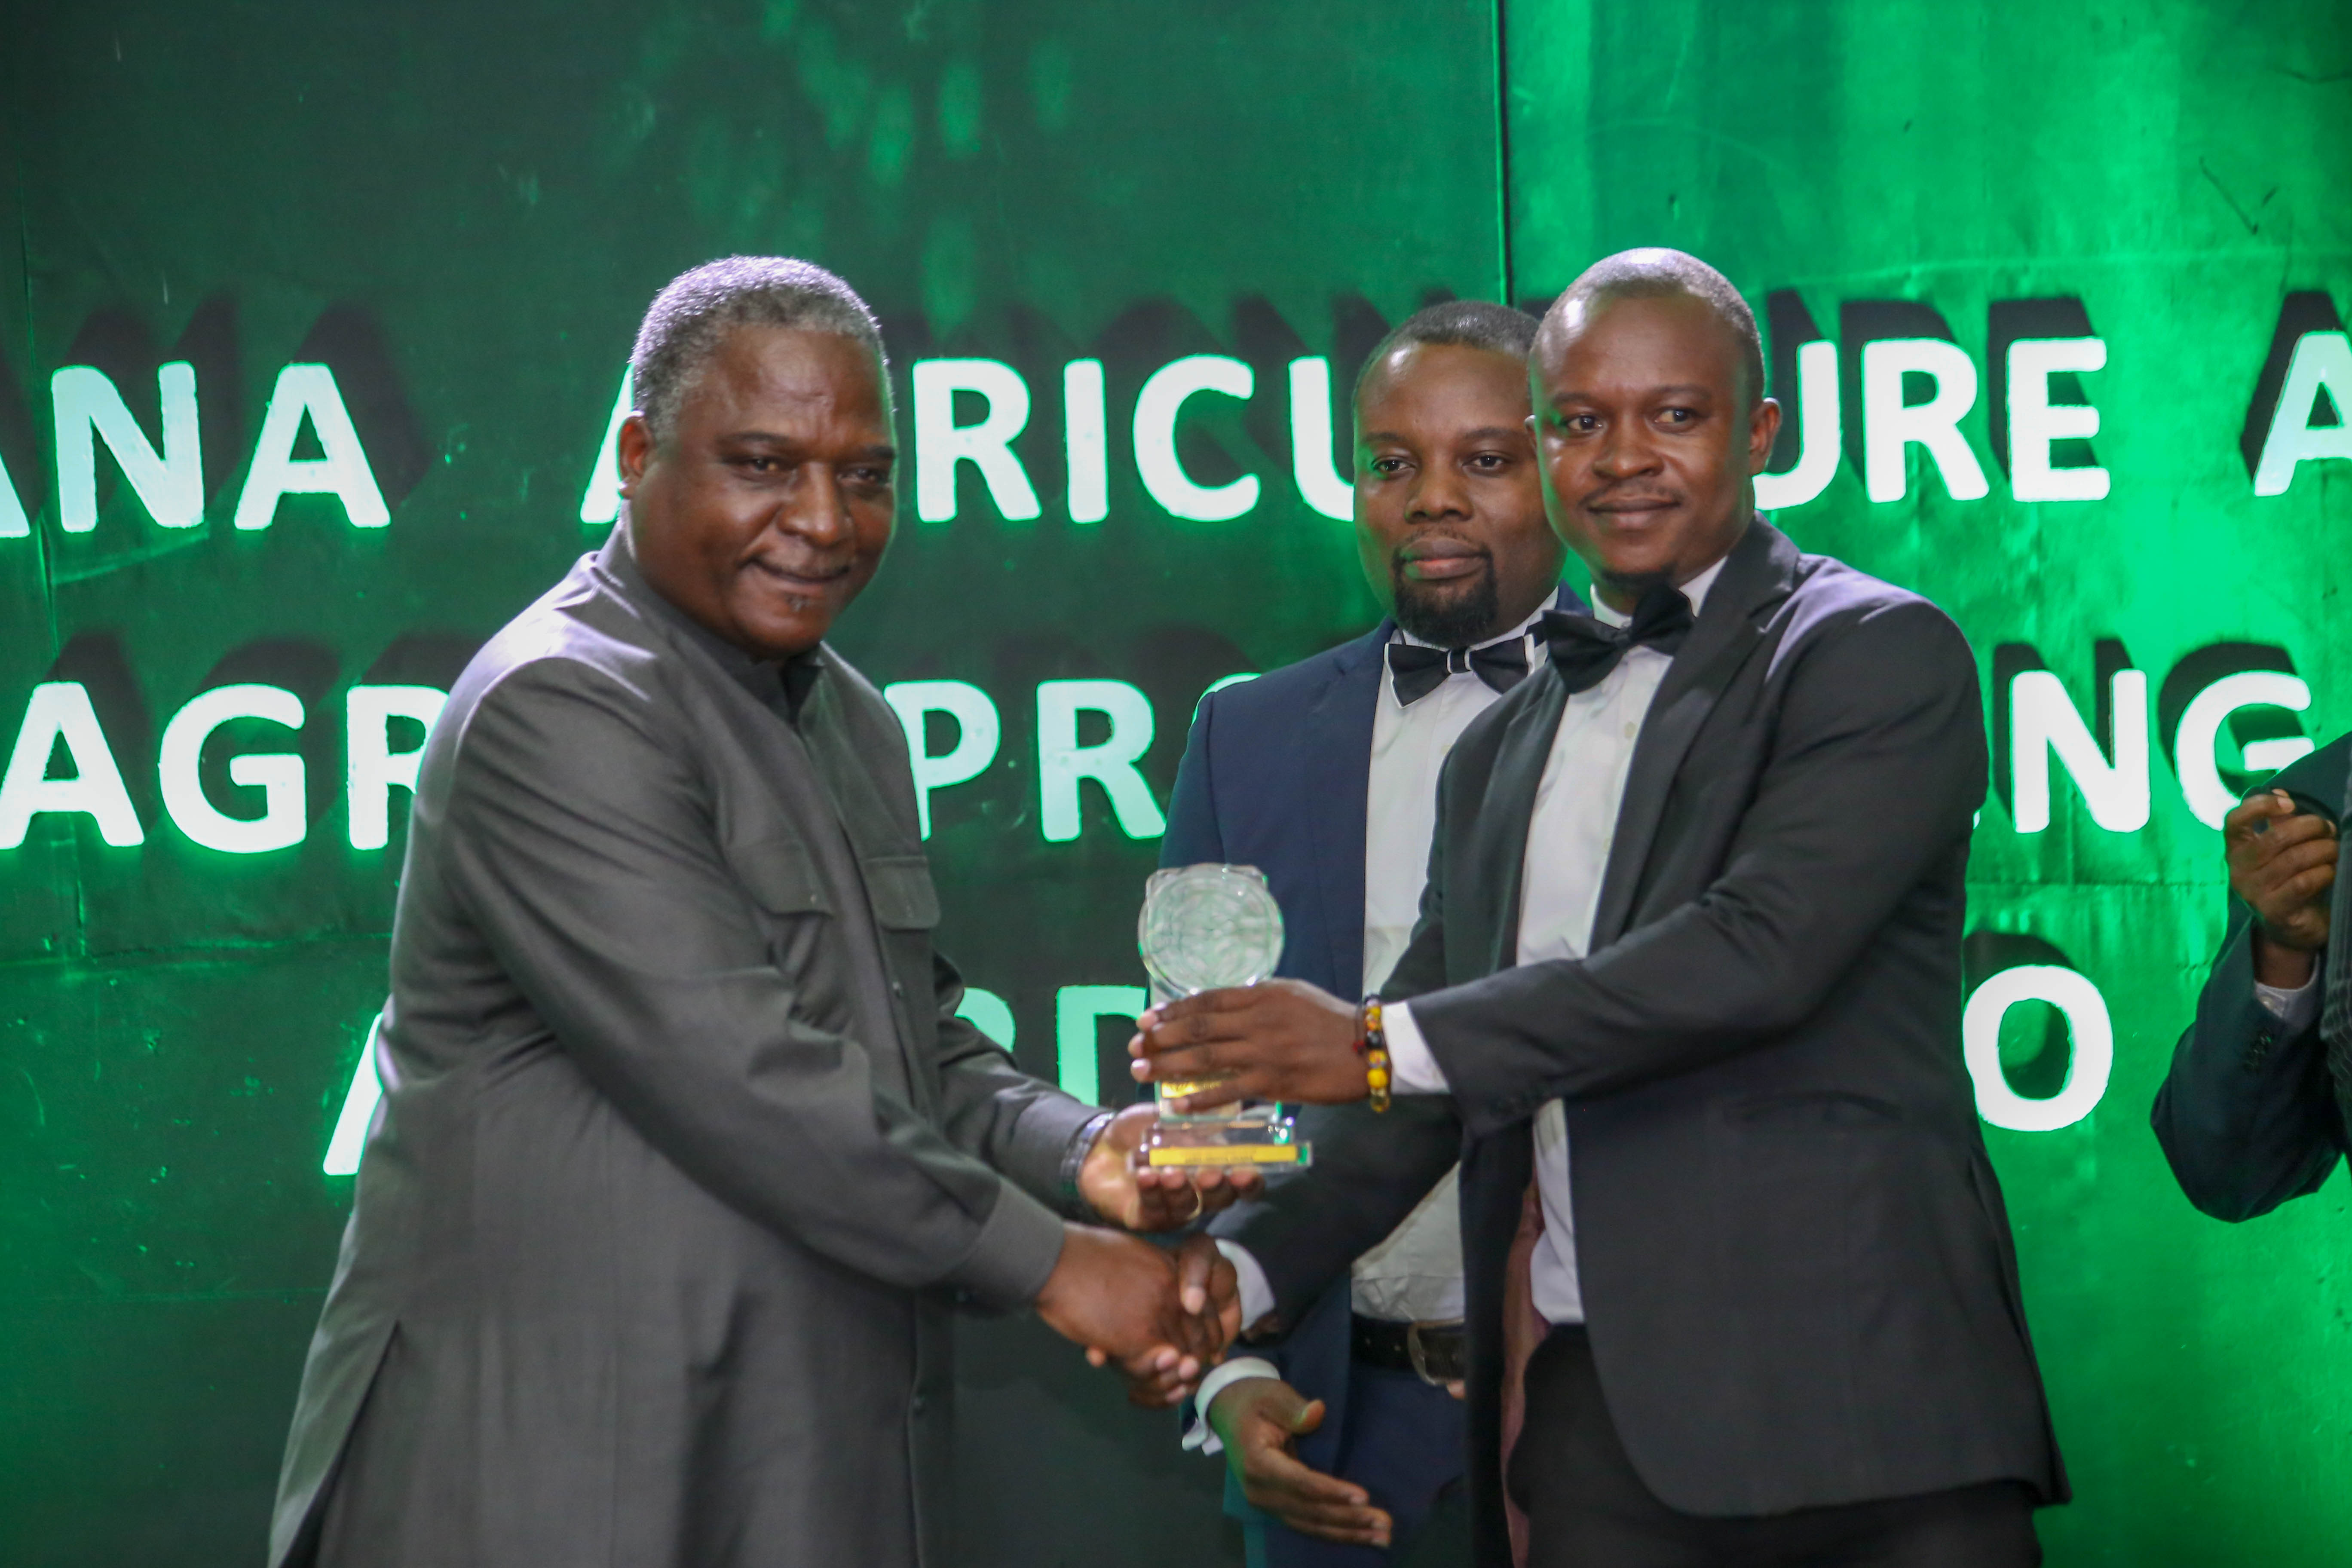 Agro Innova wins Outstanding Agro-Tech Company of the Year Award